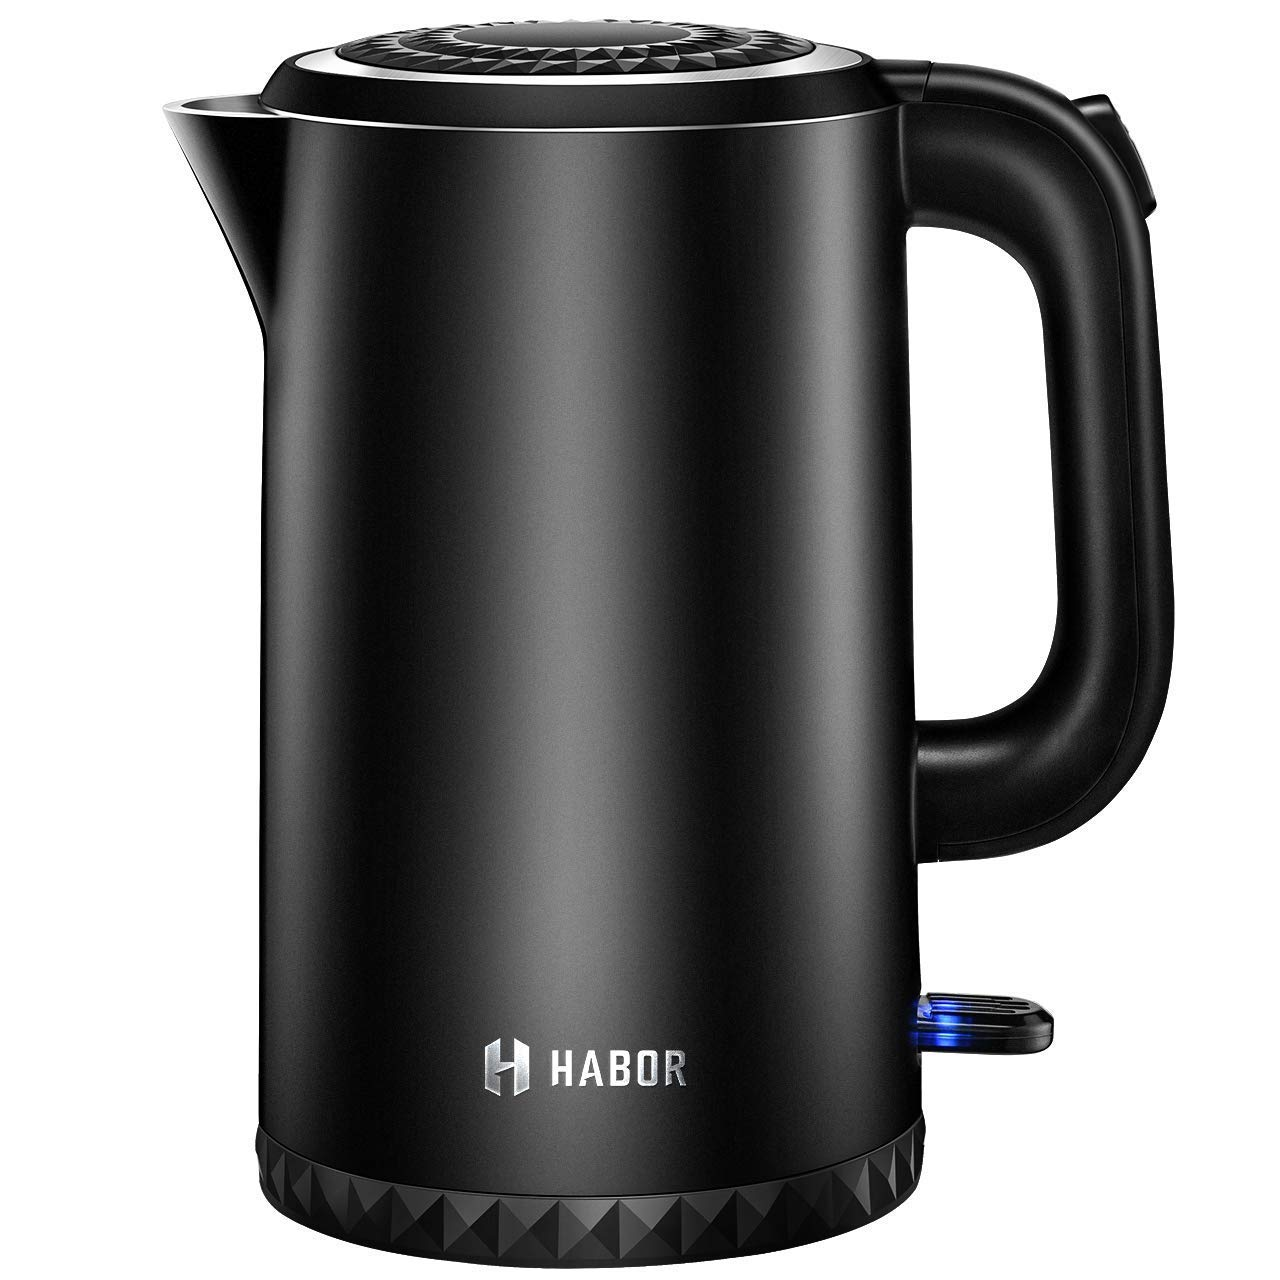 Stainless Steel Kettle, Habor Electric Kettle Fast Boiling Water Heater, Double Wall Tea Water Kettle with Led Indicator, Auto Shut Off Boil Dry Protection, 3-Year Warranty